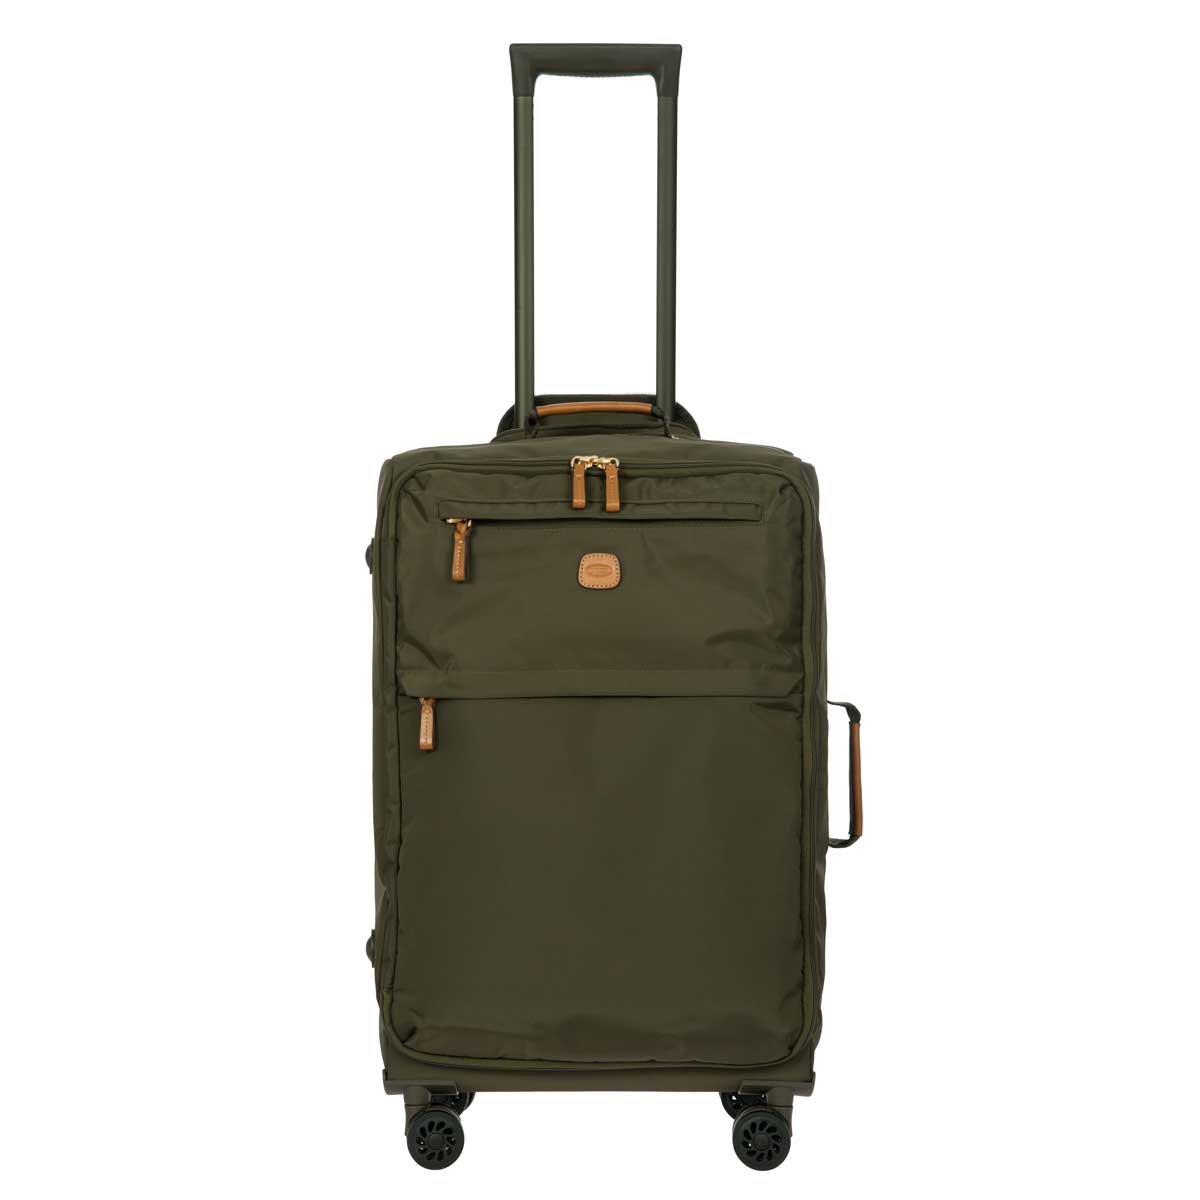 "X-Travel 25"" Spinner W / Frame by Brics (Color: Olive)"